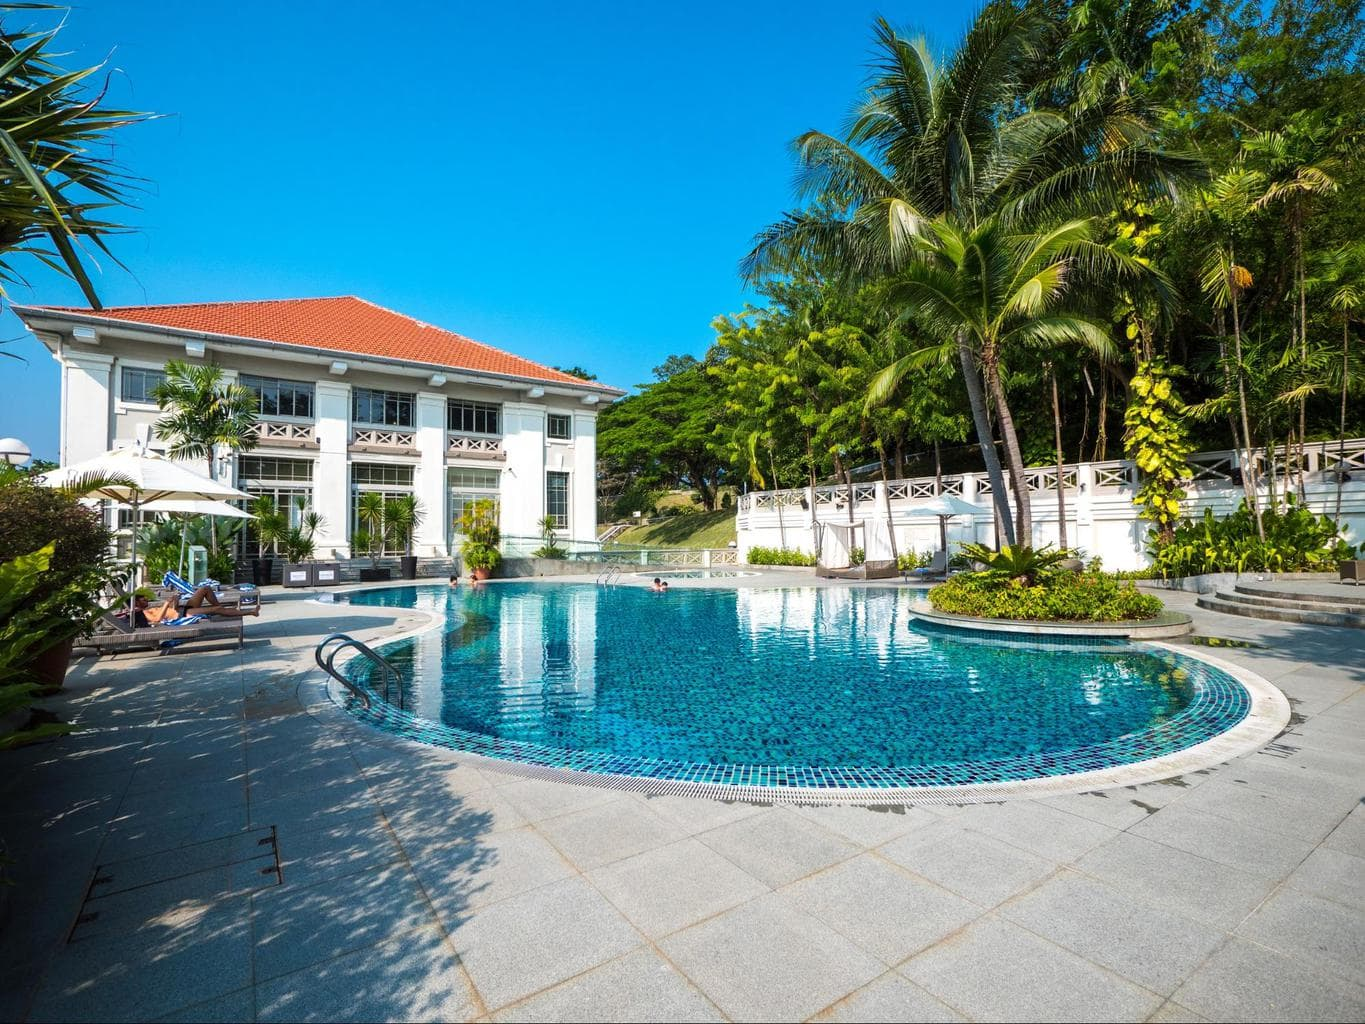 One of the two pools at Hotel Fort Canning